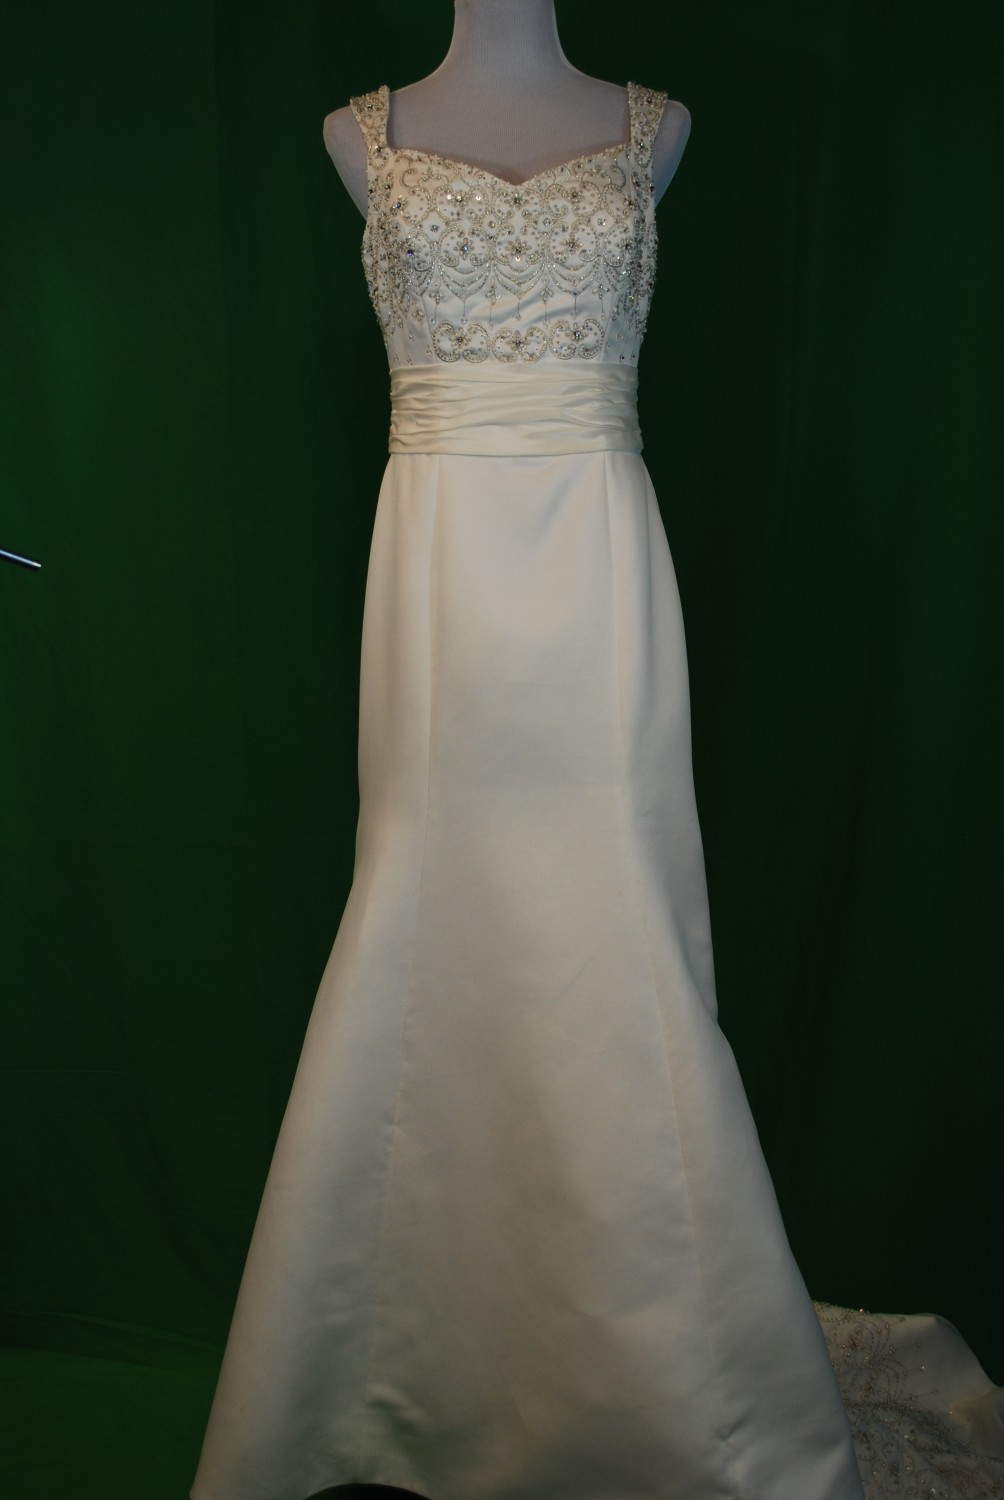 Eden Bridals – Original Retail: $800, CWS: $400